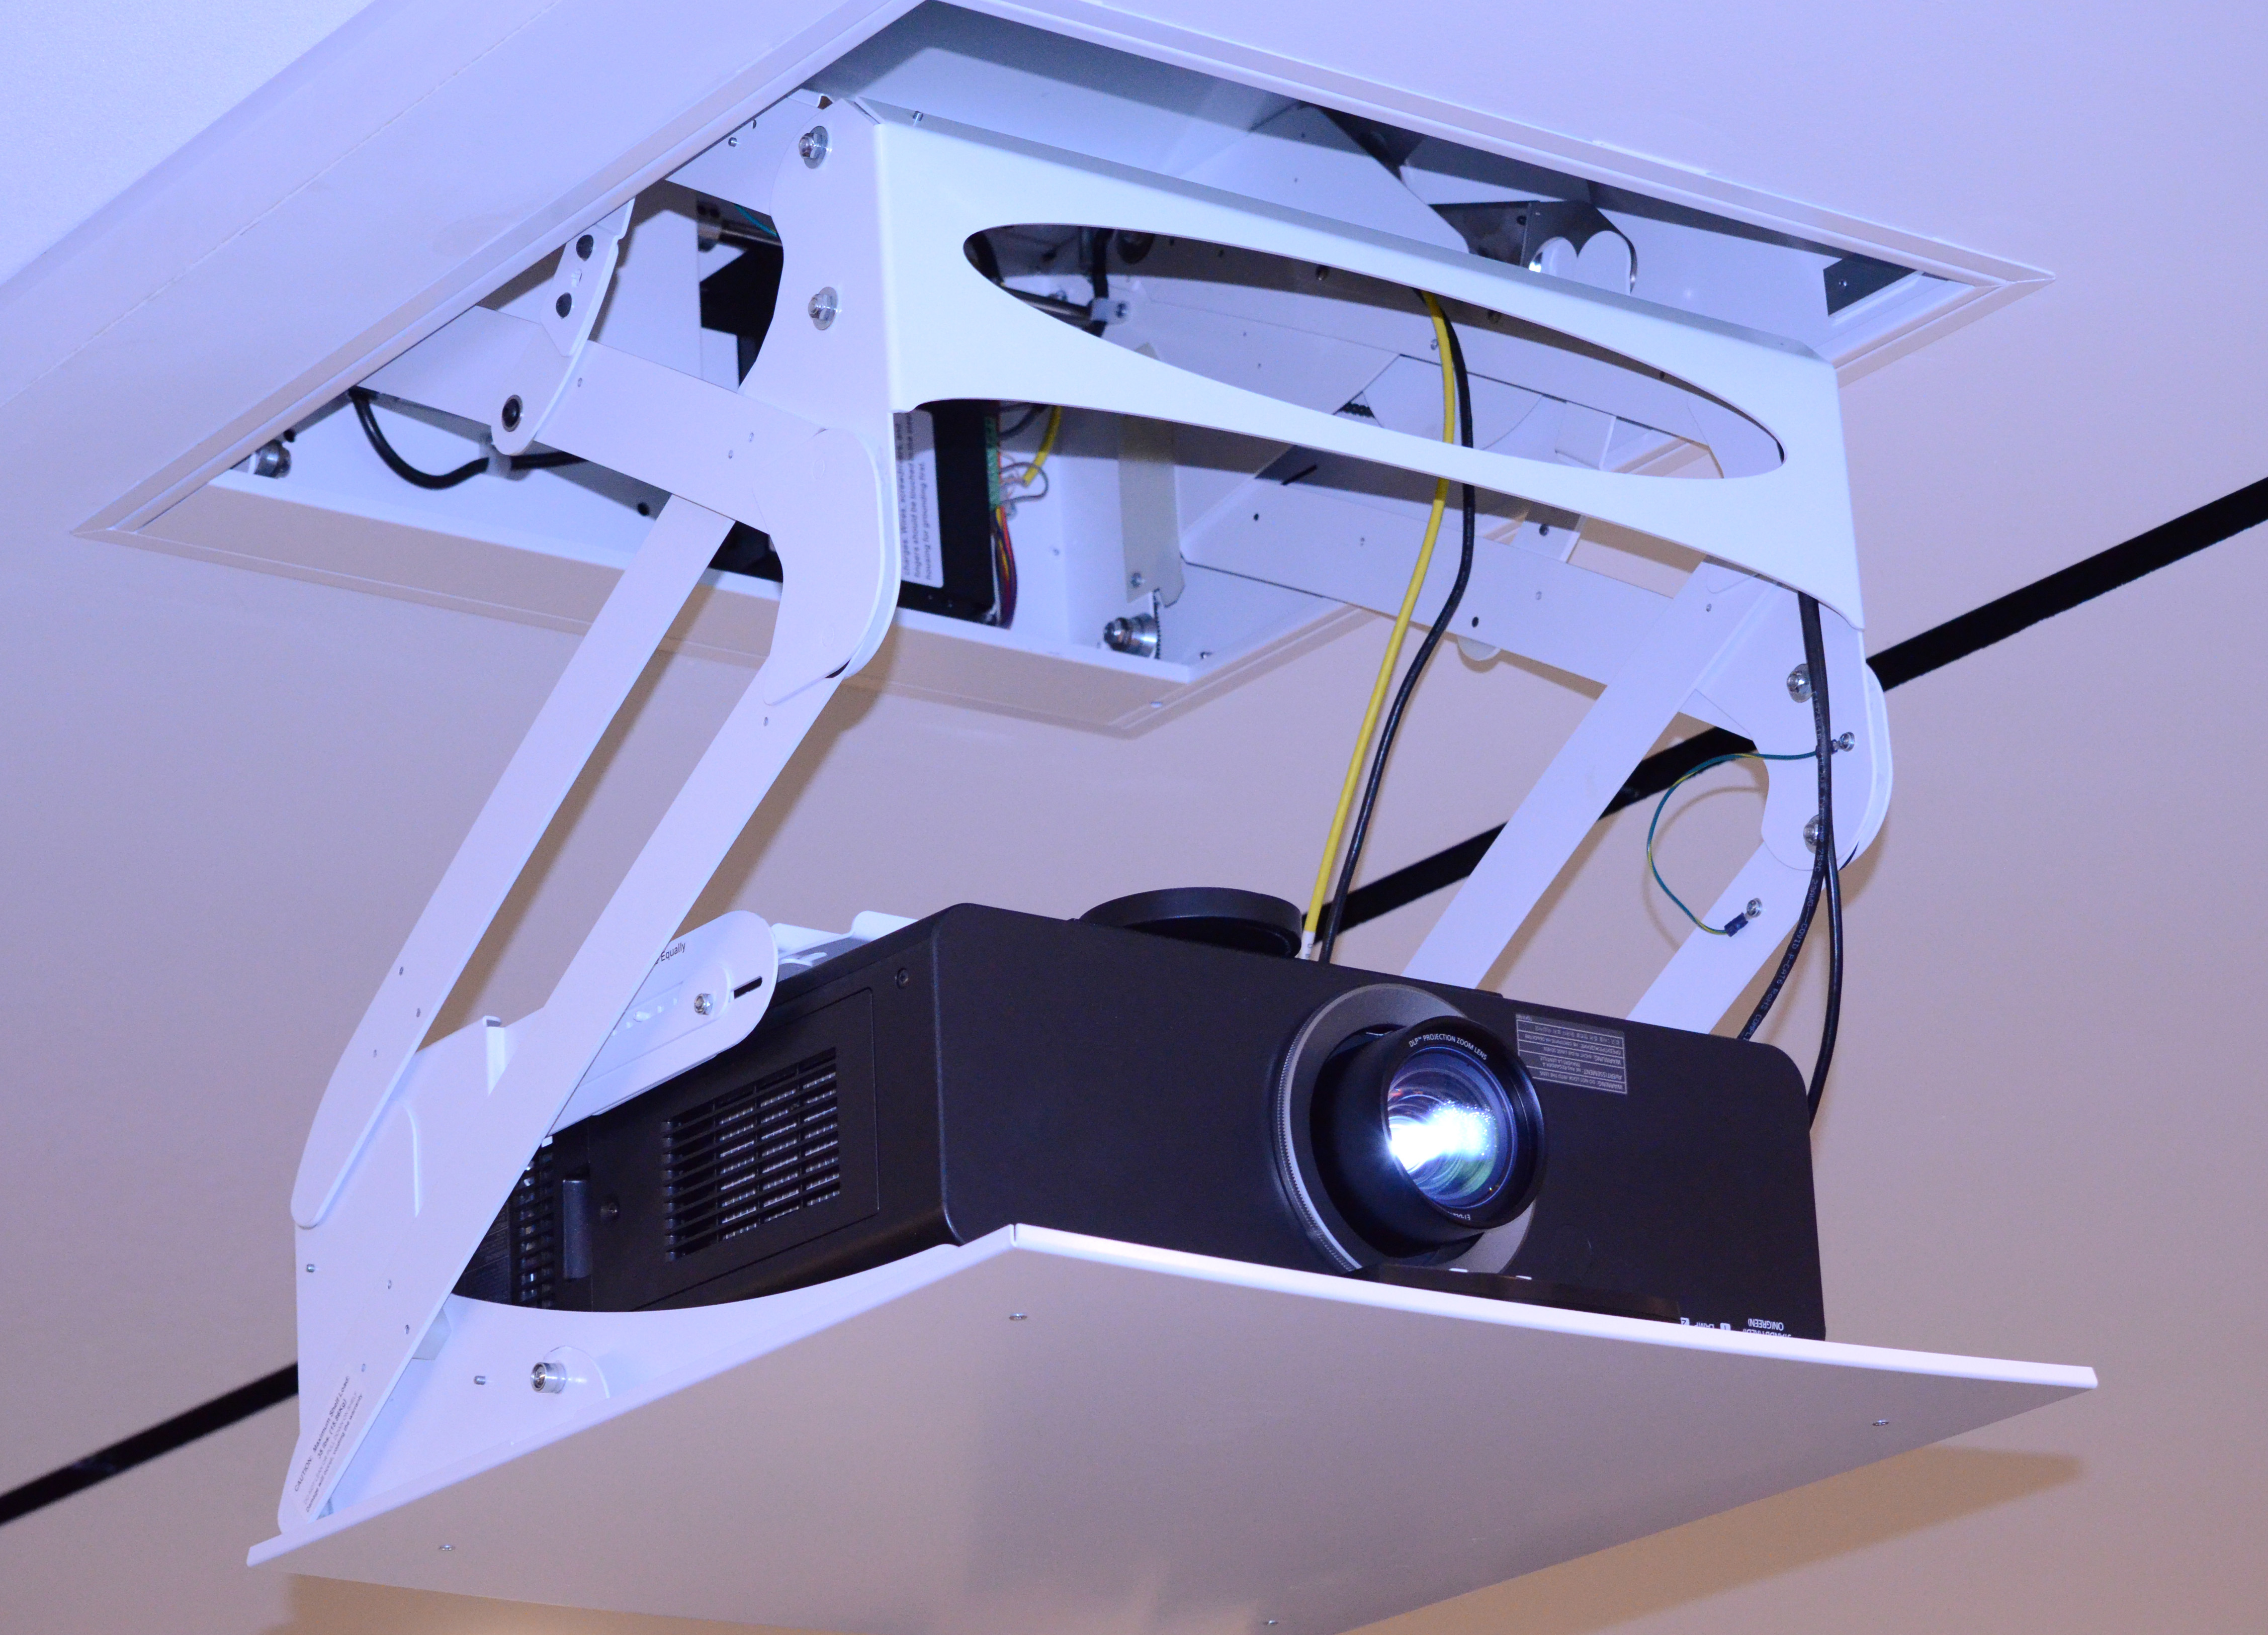 Fully integrated presentation equipment wired under the floor and above the ceiling eliminates loose wires on the floor.